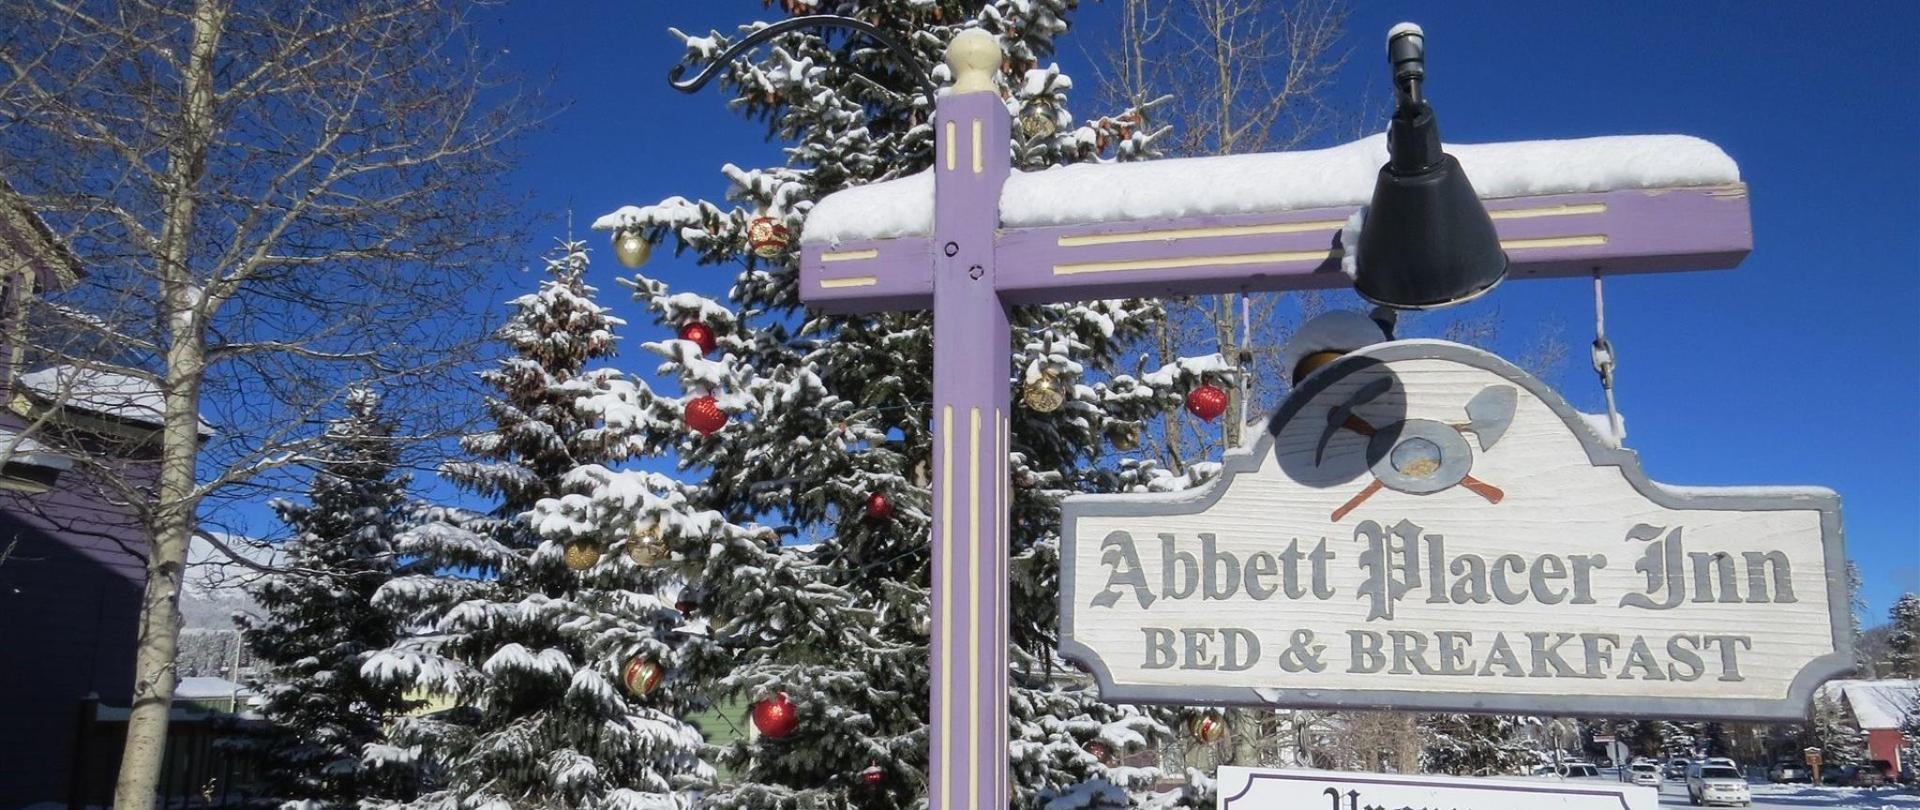 Abbett Placer Inn